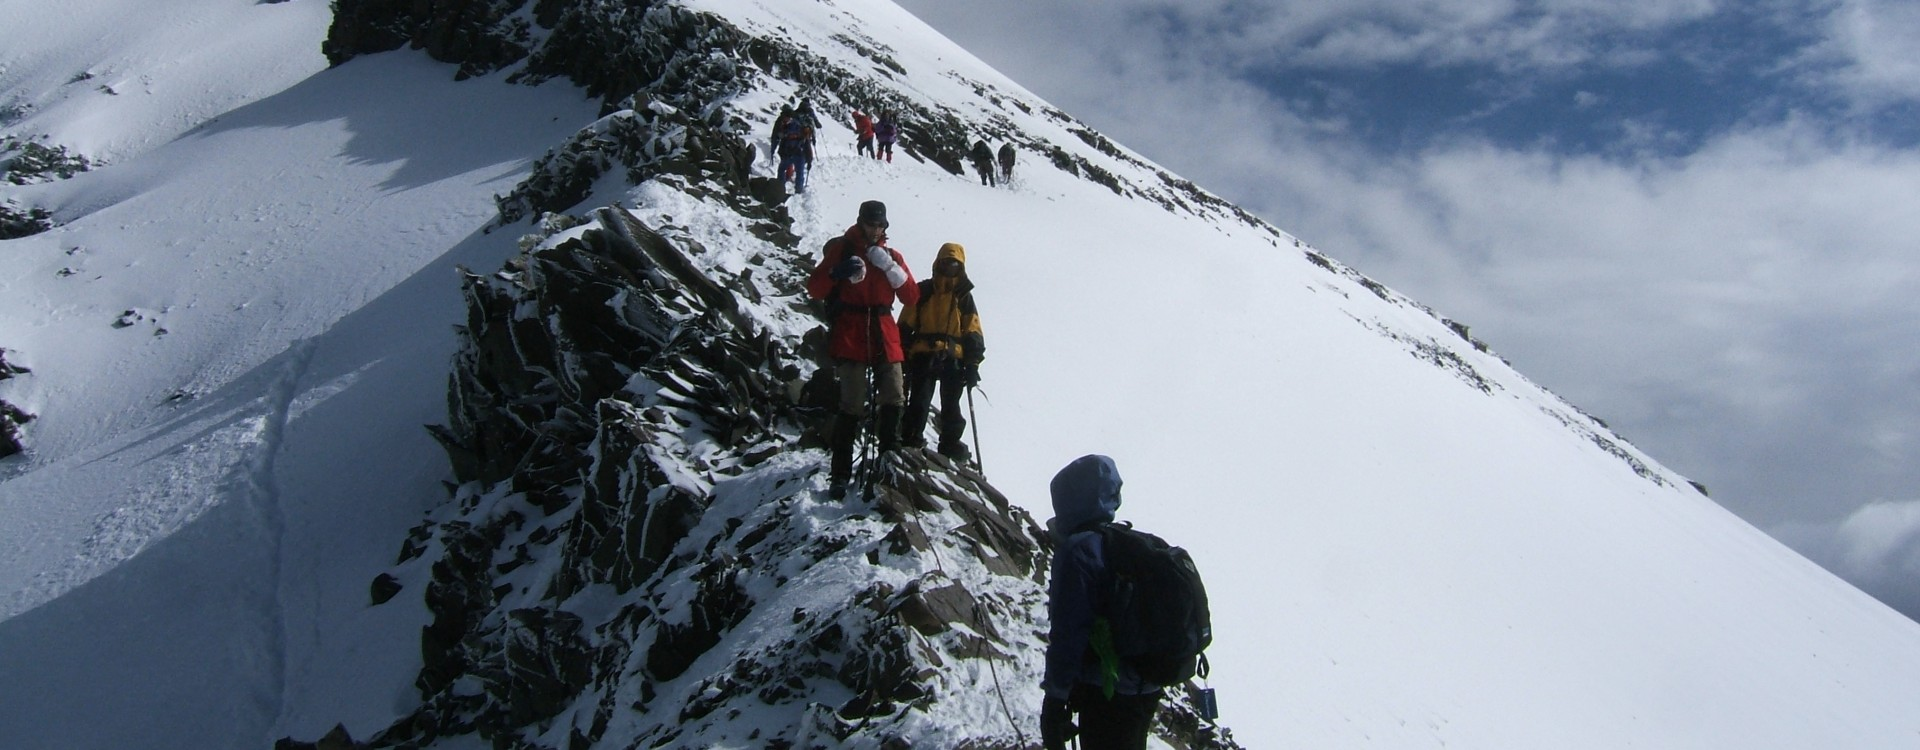 The rock ridge approach to the summit